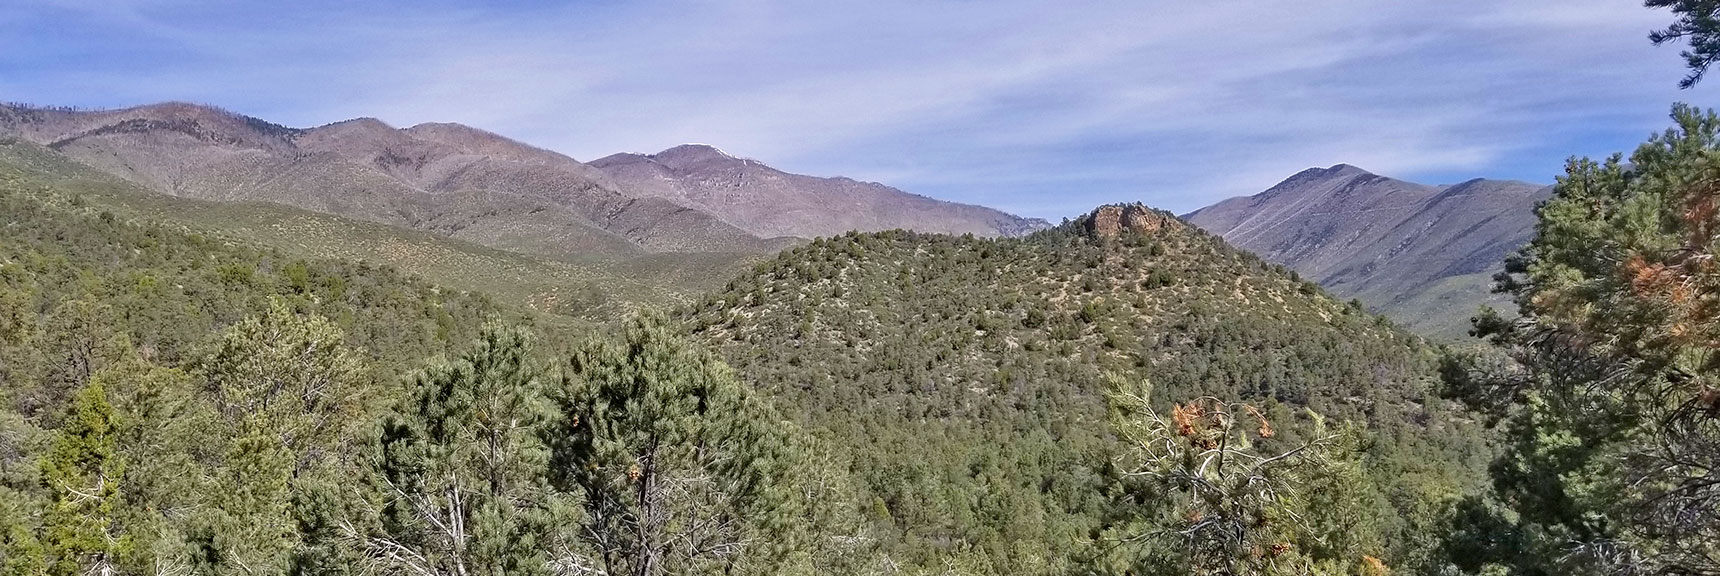 Griffith Peak and Harris Mountain Viewed from Griffith Shadow Trail, La Madre Mountains Wilderness, Nevada